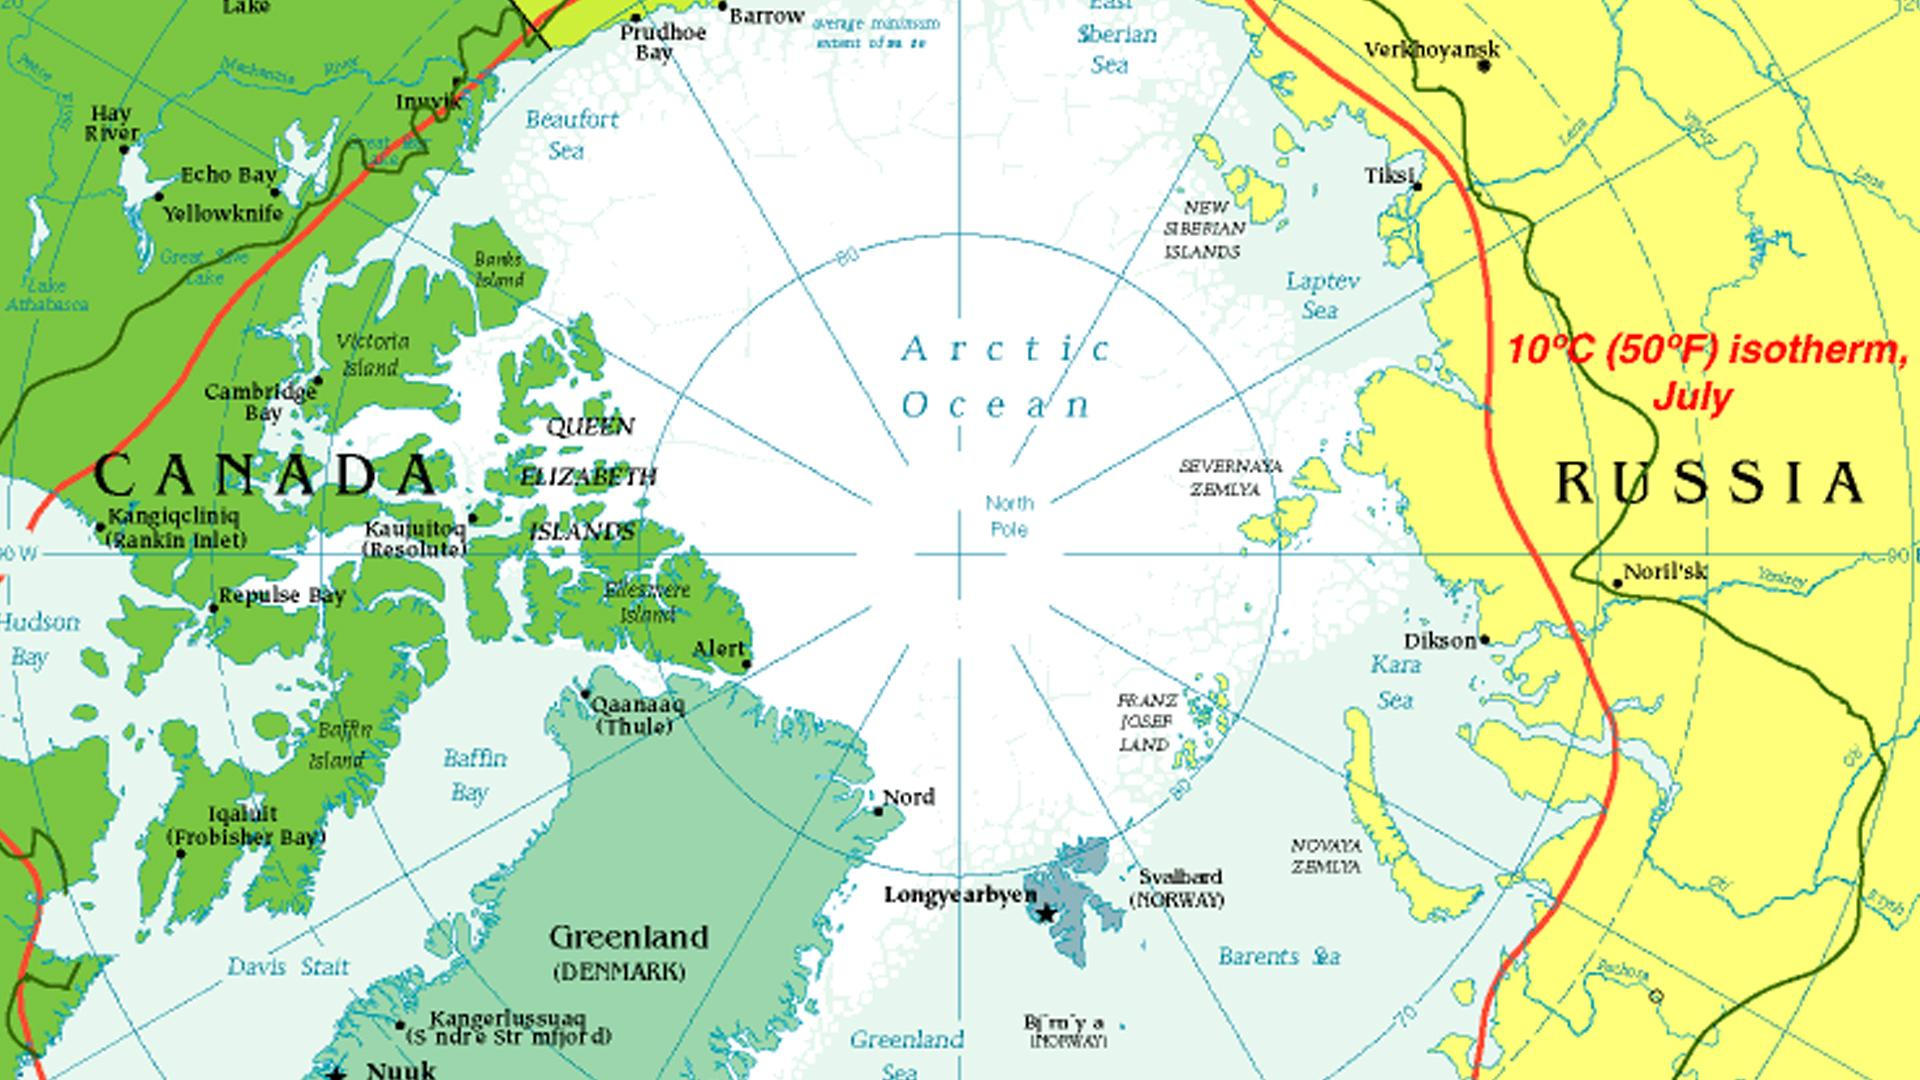 Climate and climate change in the Arctic